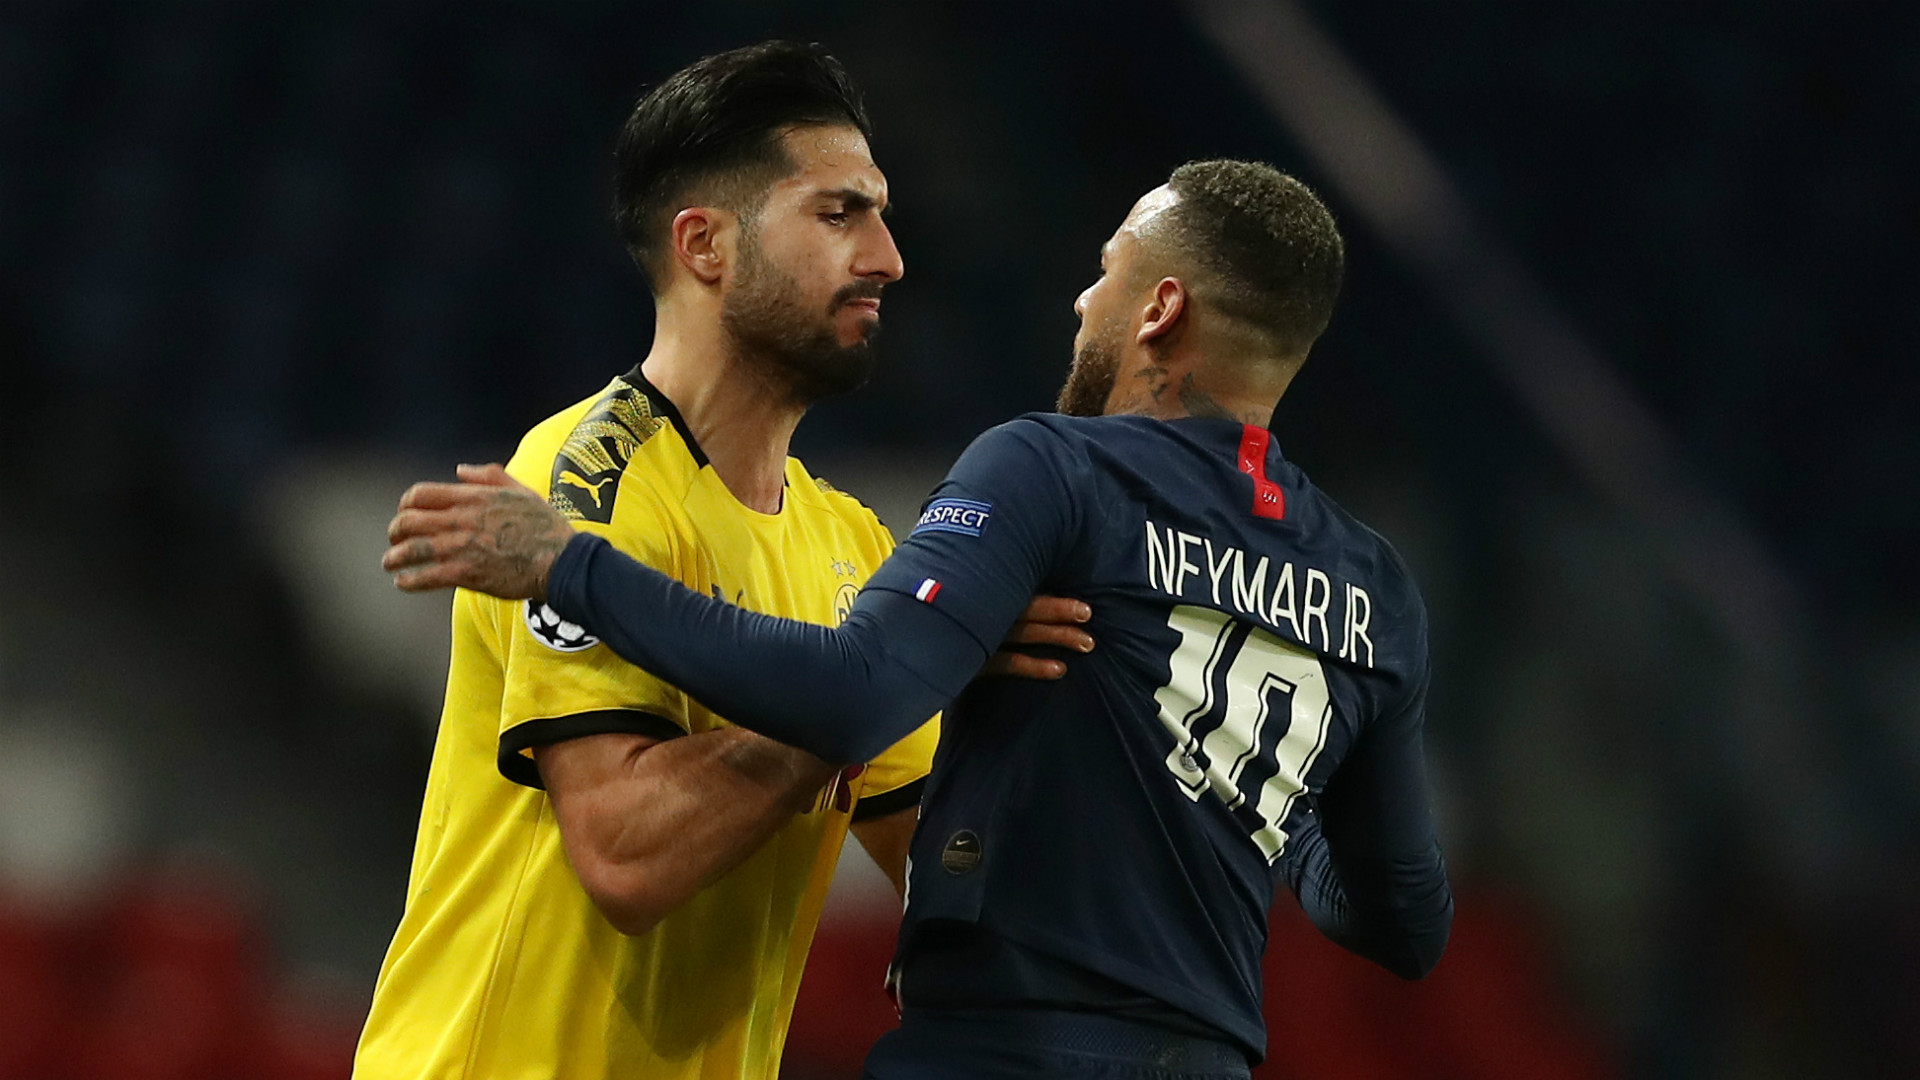 'Neymar is a good actor' – Emre Can's red card branded 'almost ridiculous' by Dortmund